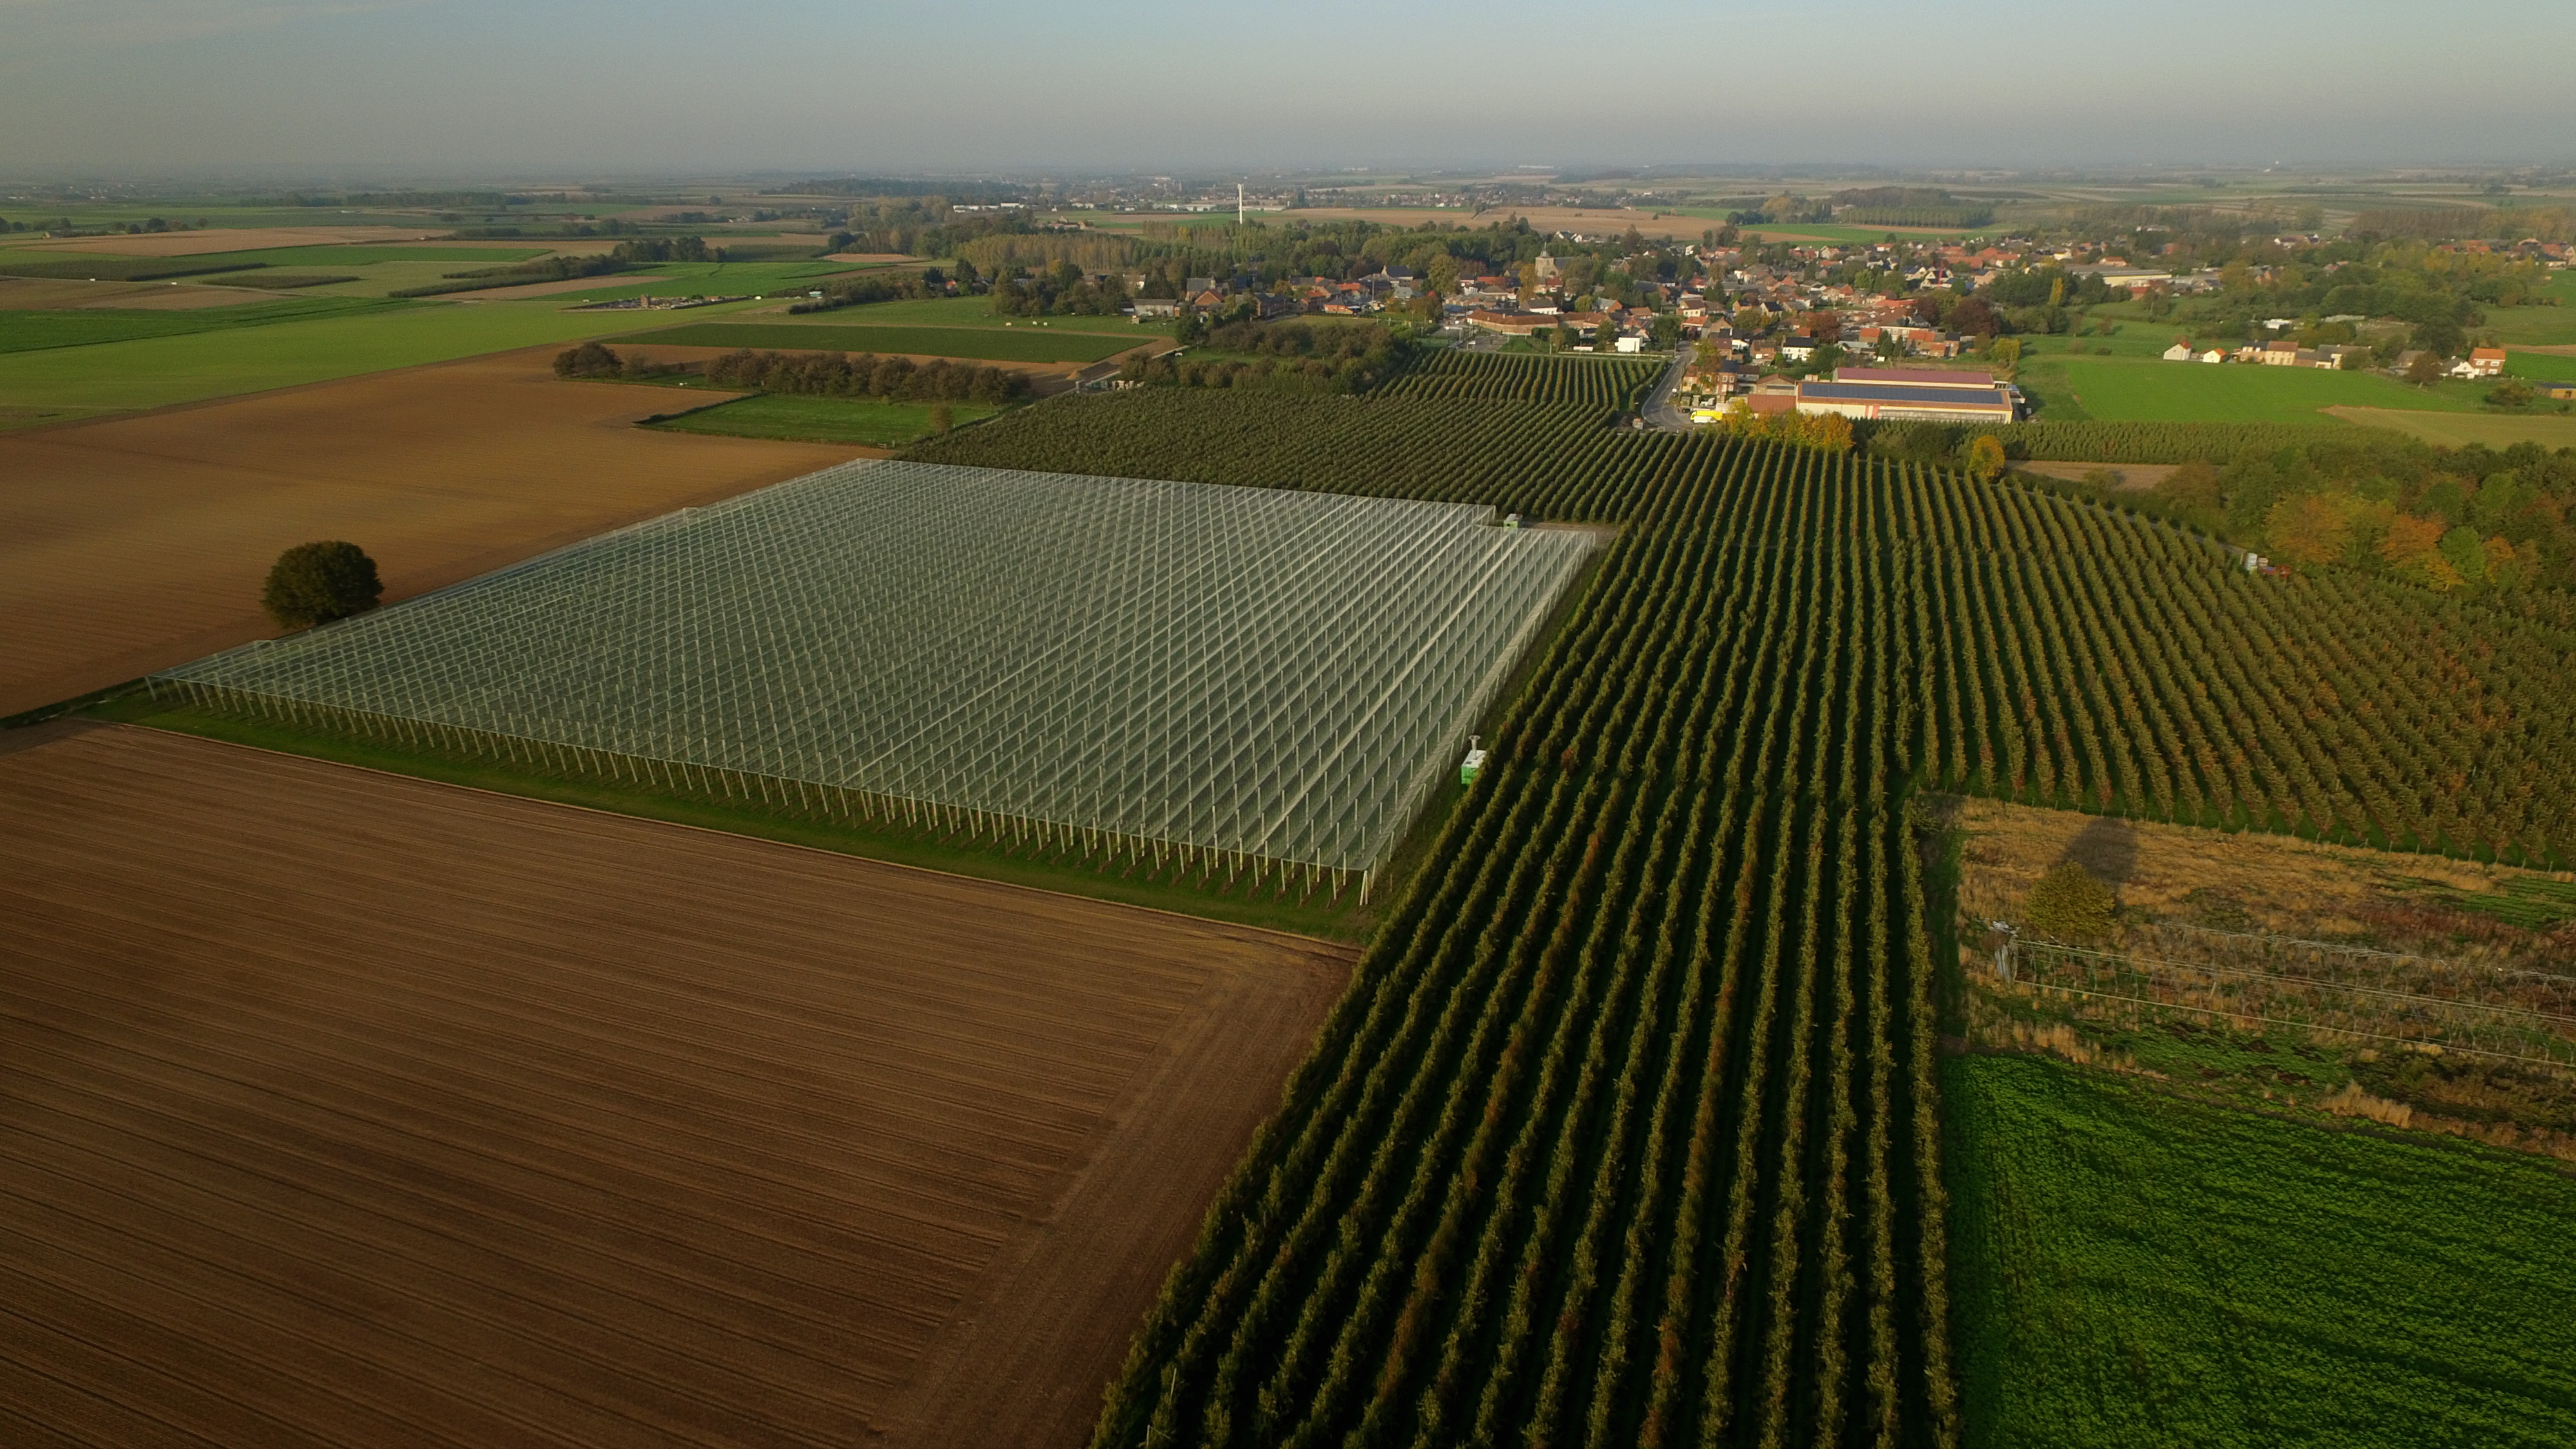 Aerial drone picture shows fruit farming greenhouses in Landen, Thursday 31 October 2019. (Photo by ERIC LALMAND/BELGA MAG/AFP via Getty Images)